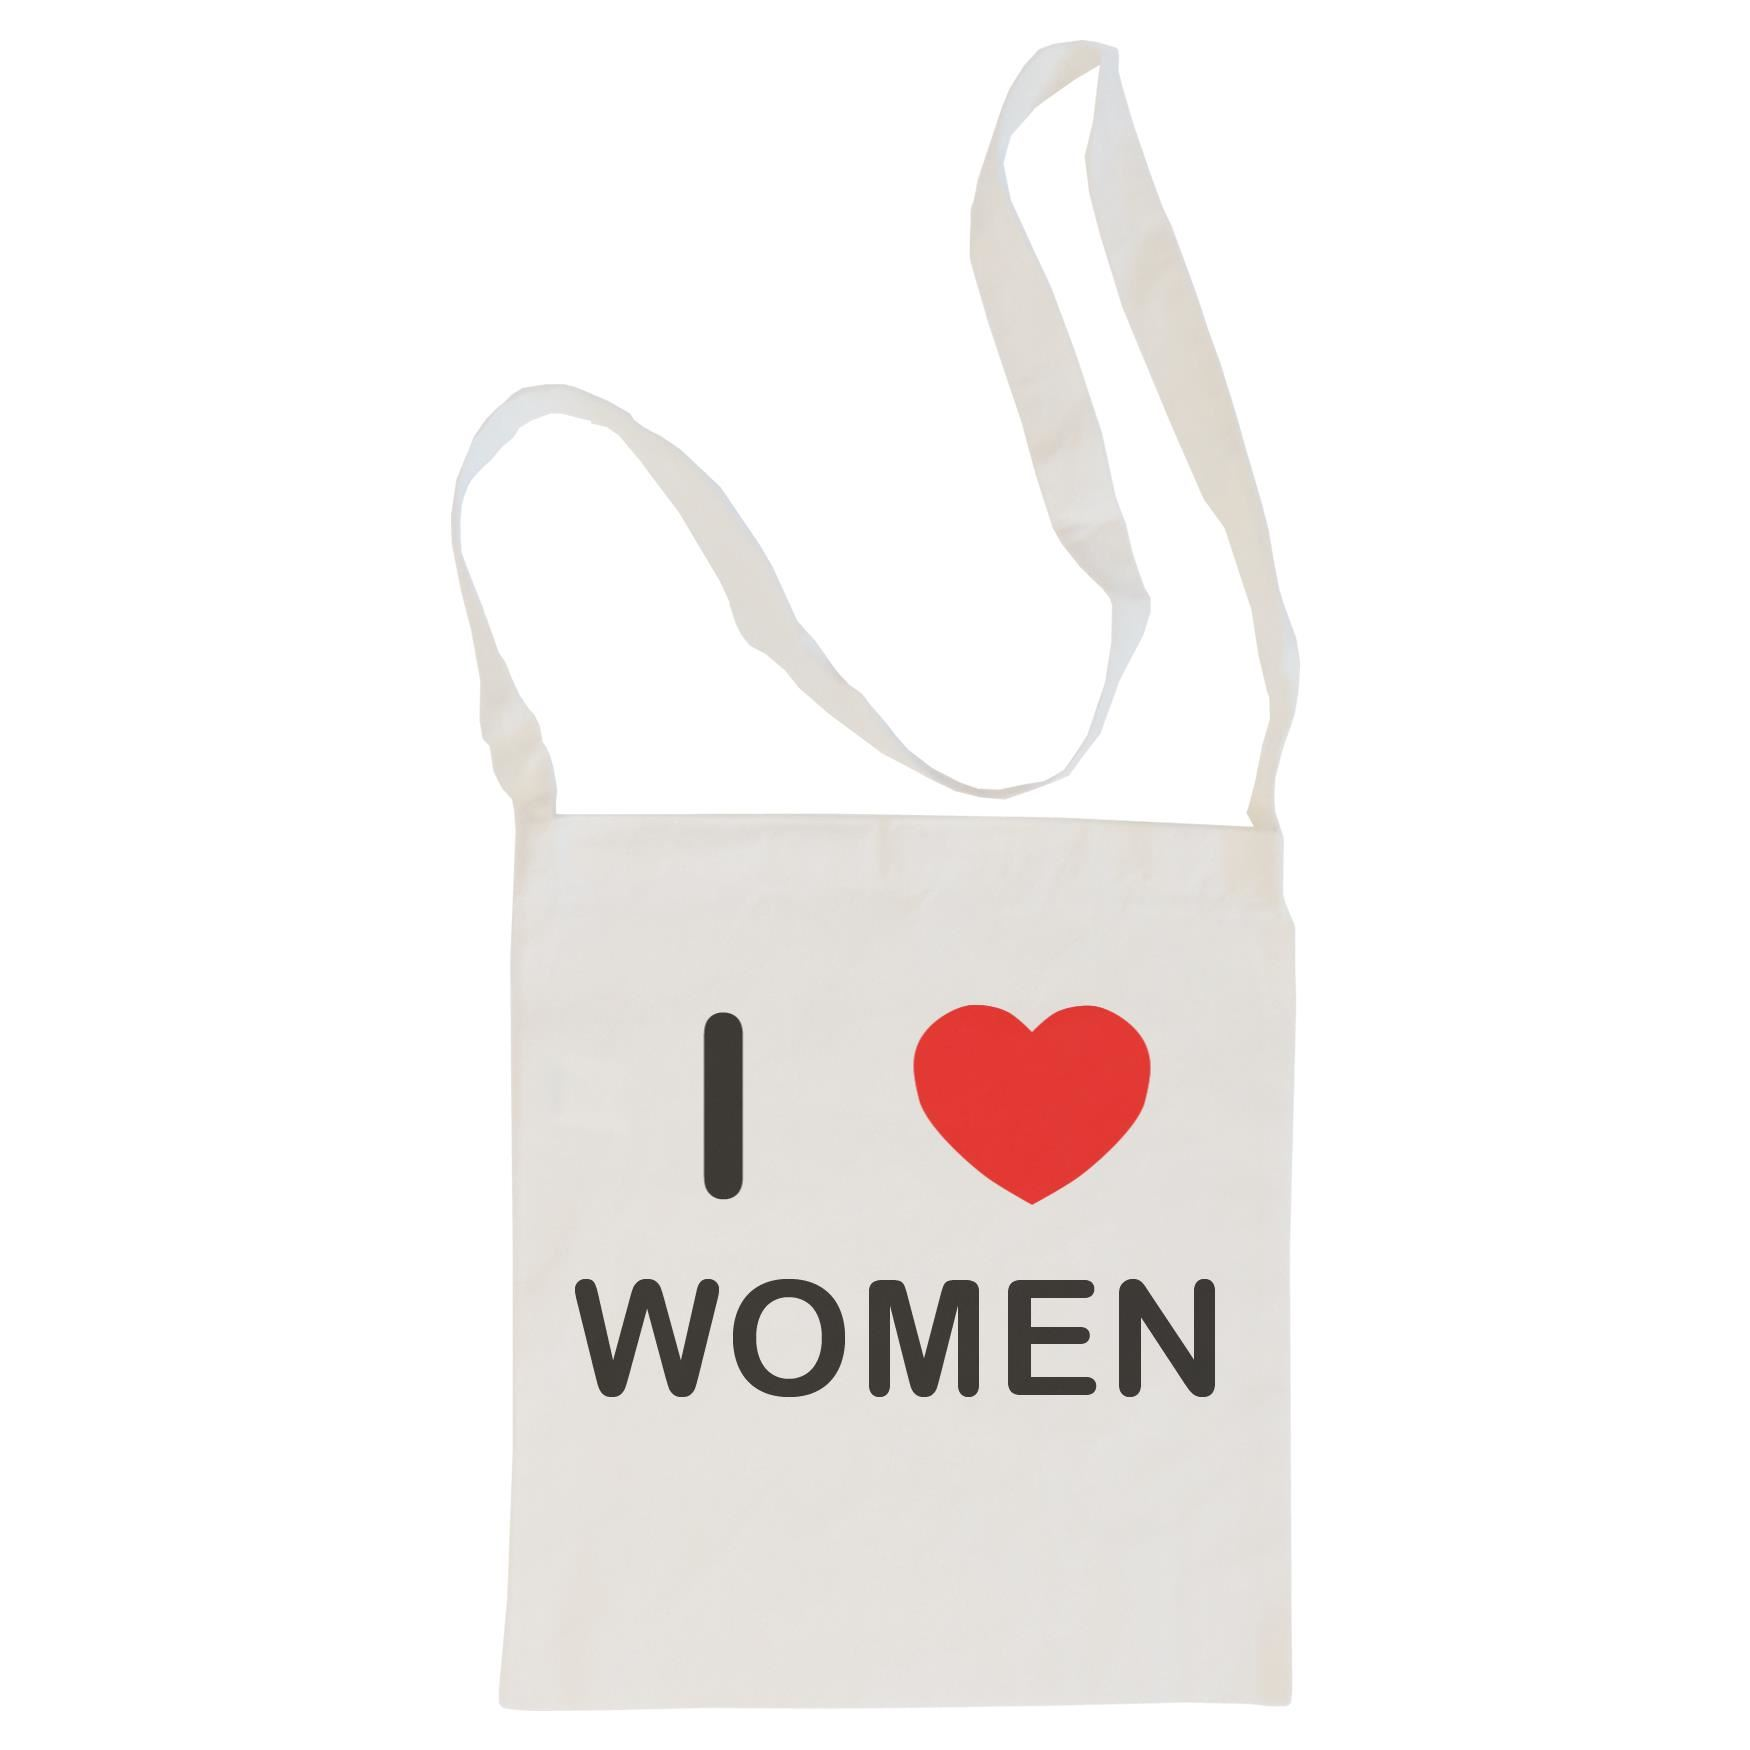 I Love Women - Cotton Bag | Size choice Tote, Shopper or Sling